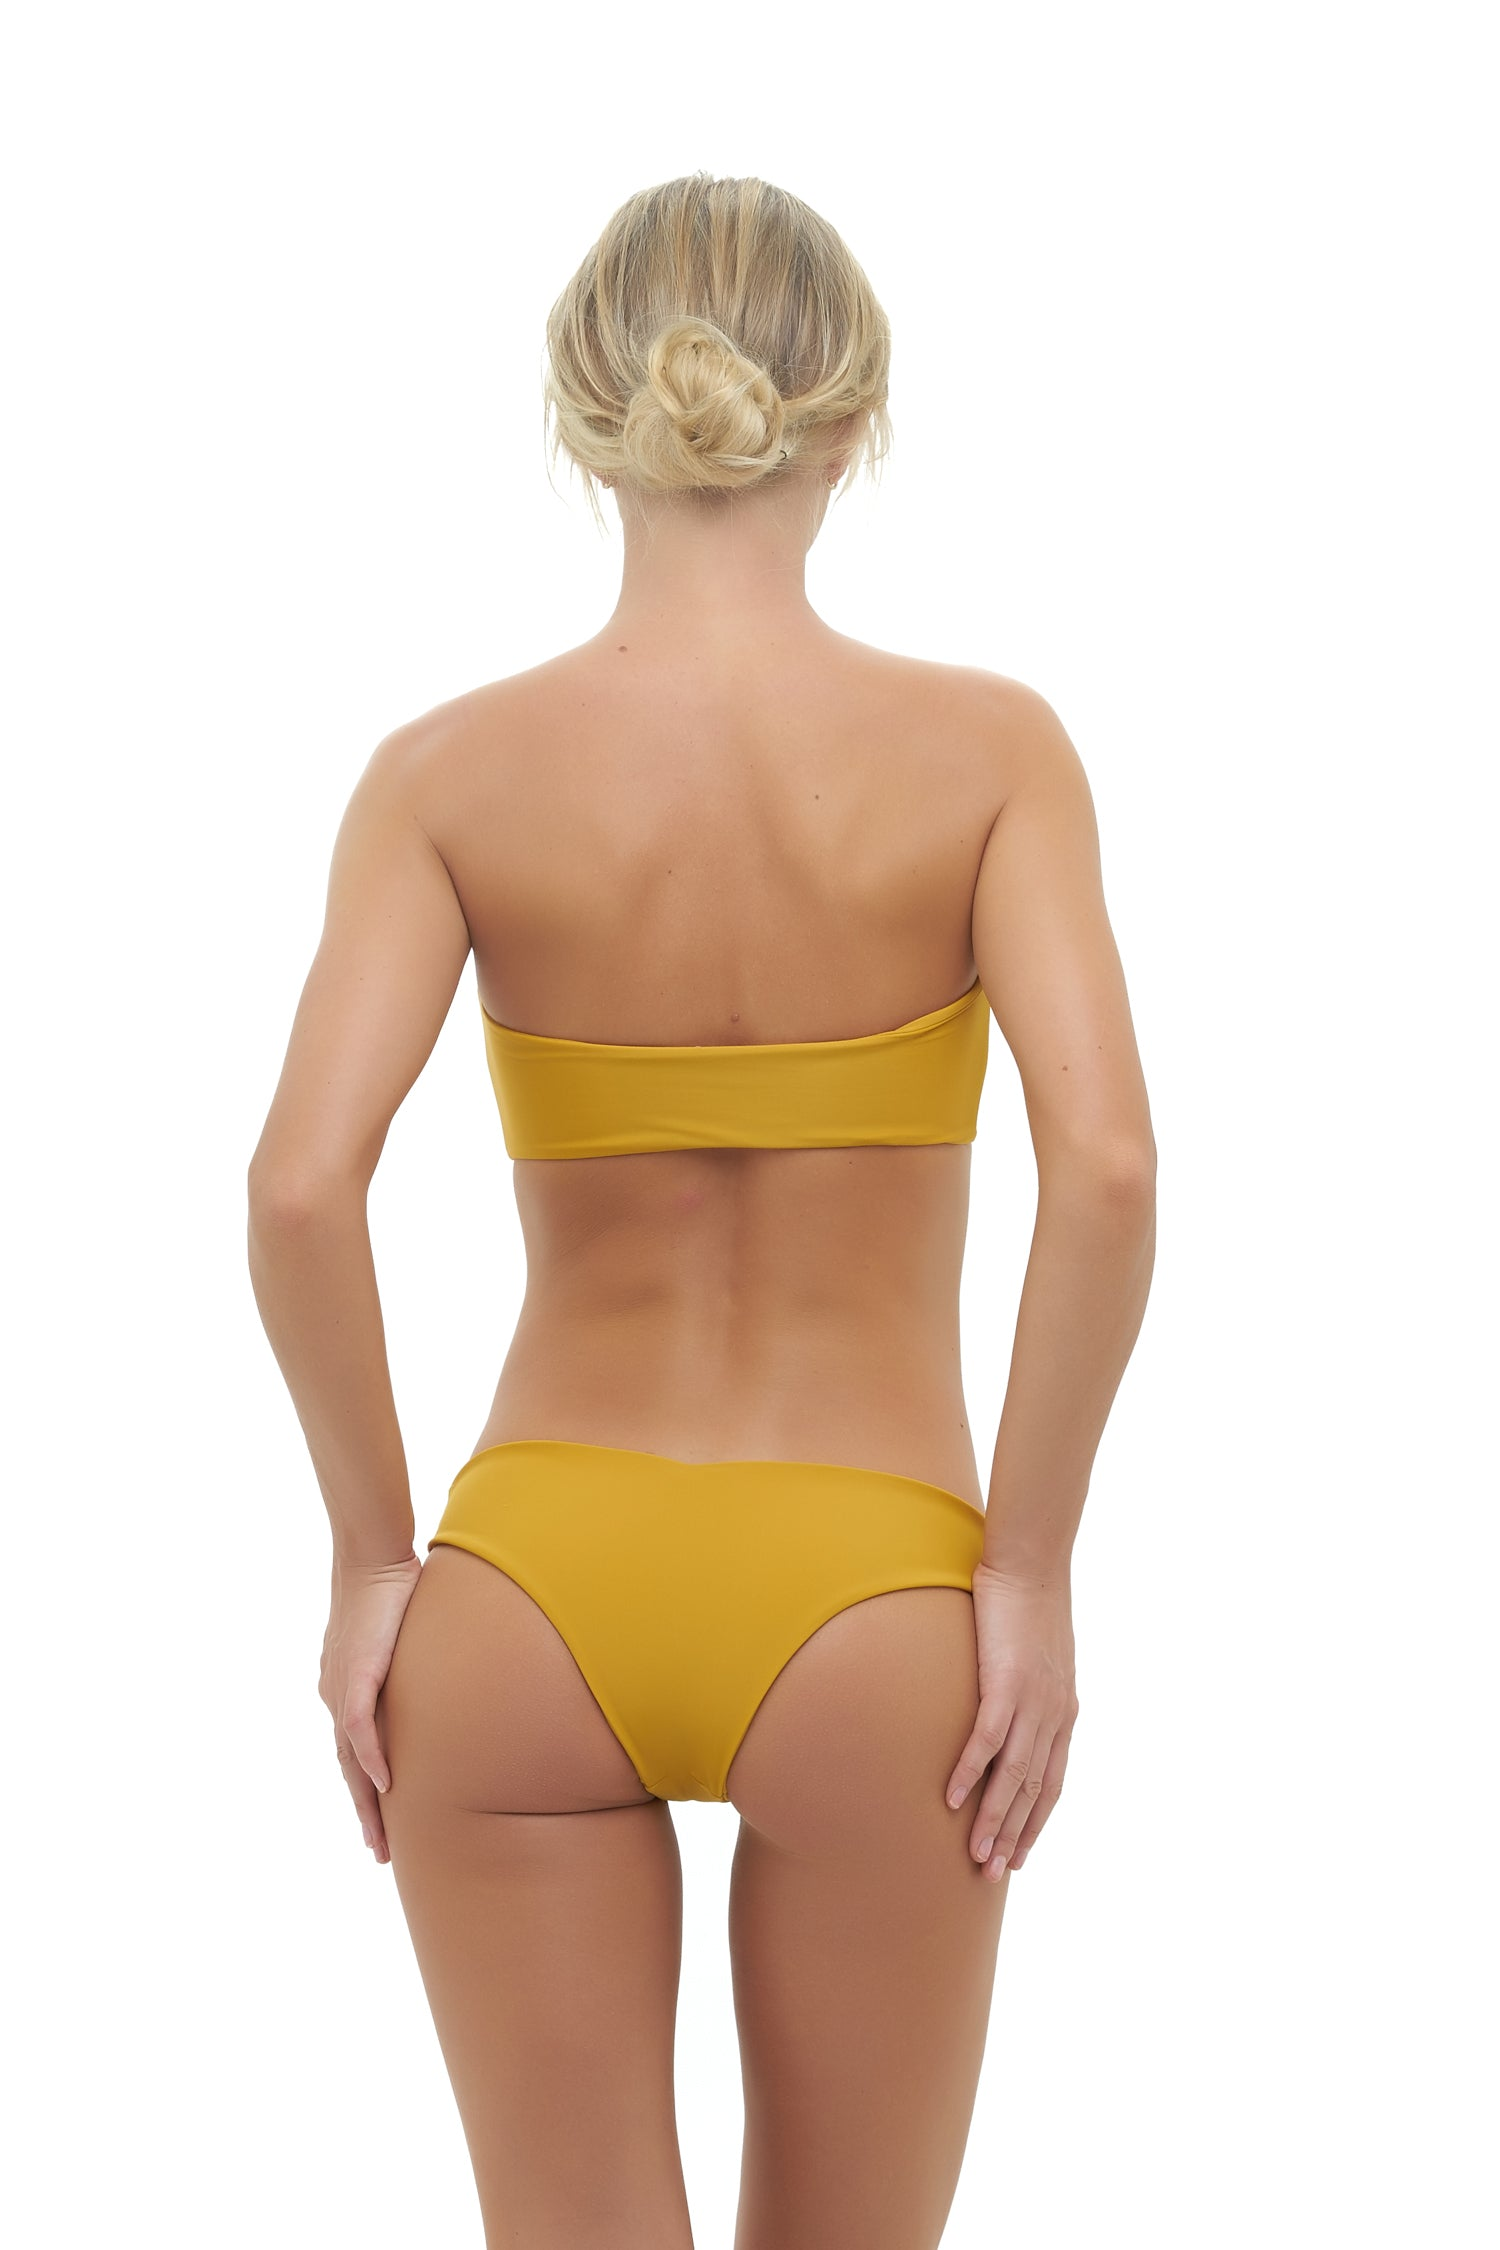 Storm Swimwear - Ravello - Plain Bandeu Bikini Top in Mustard